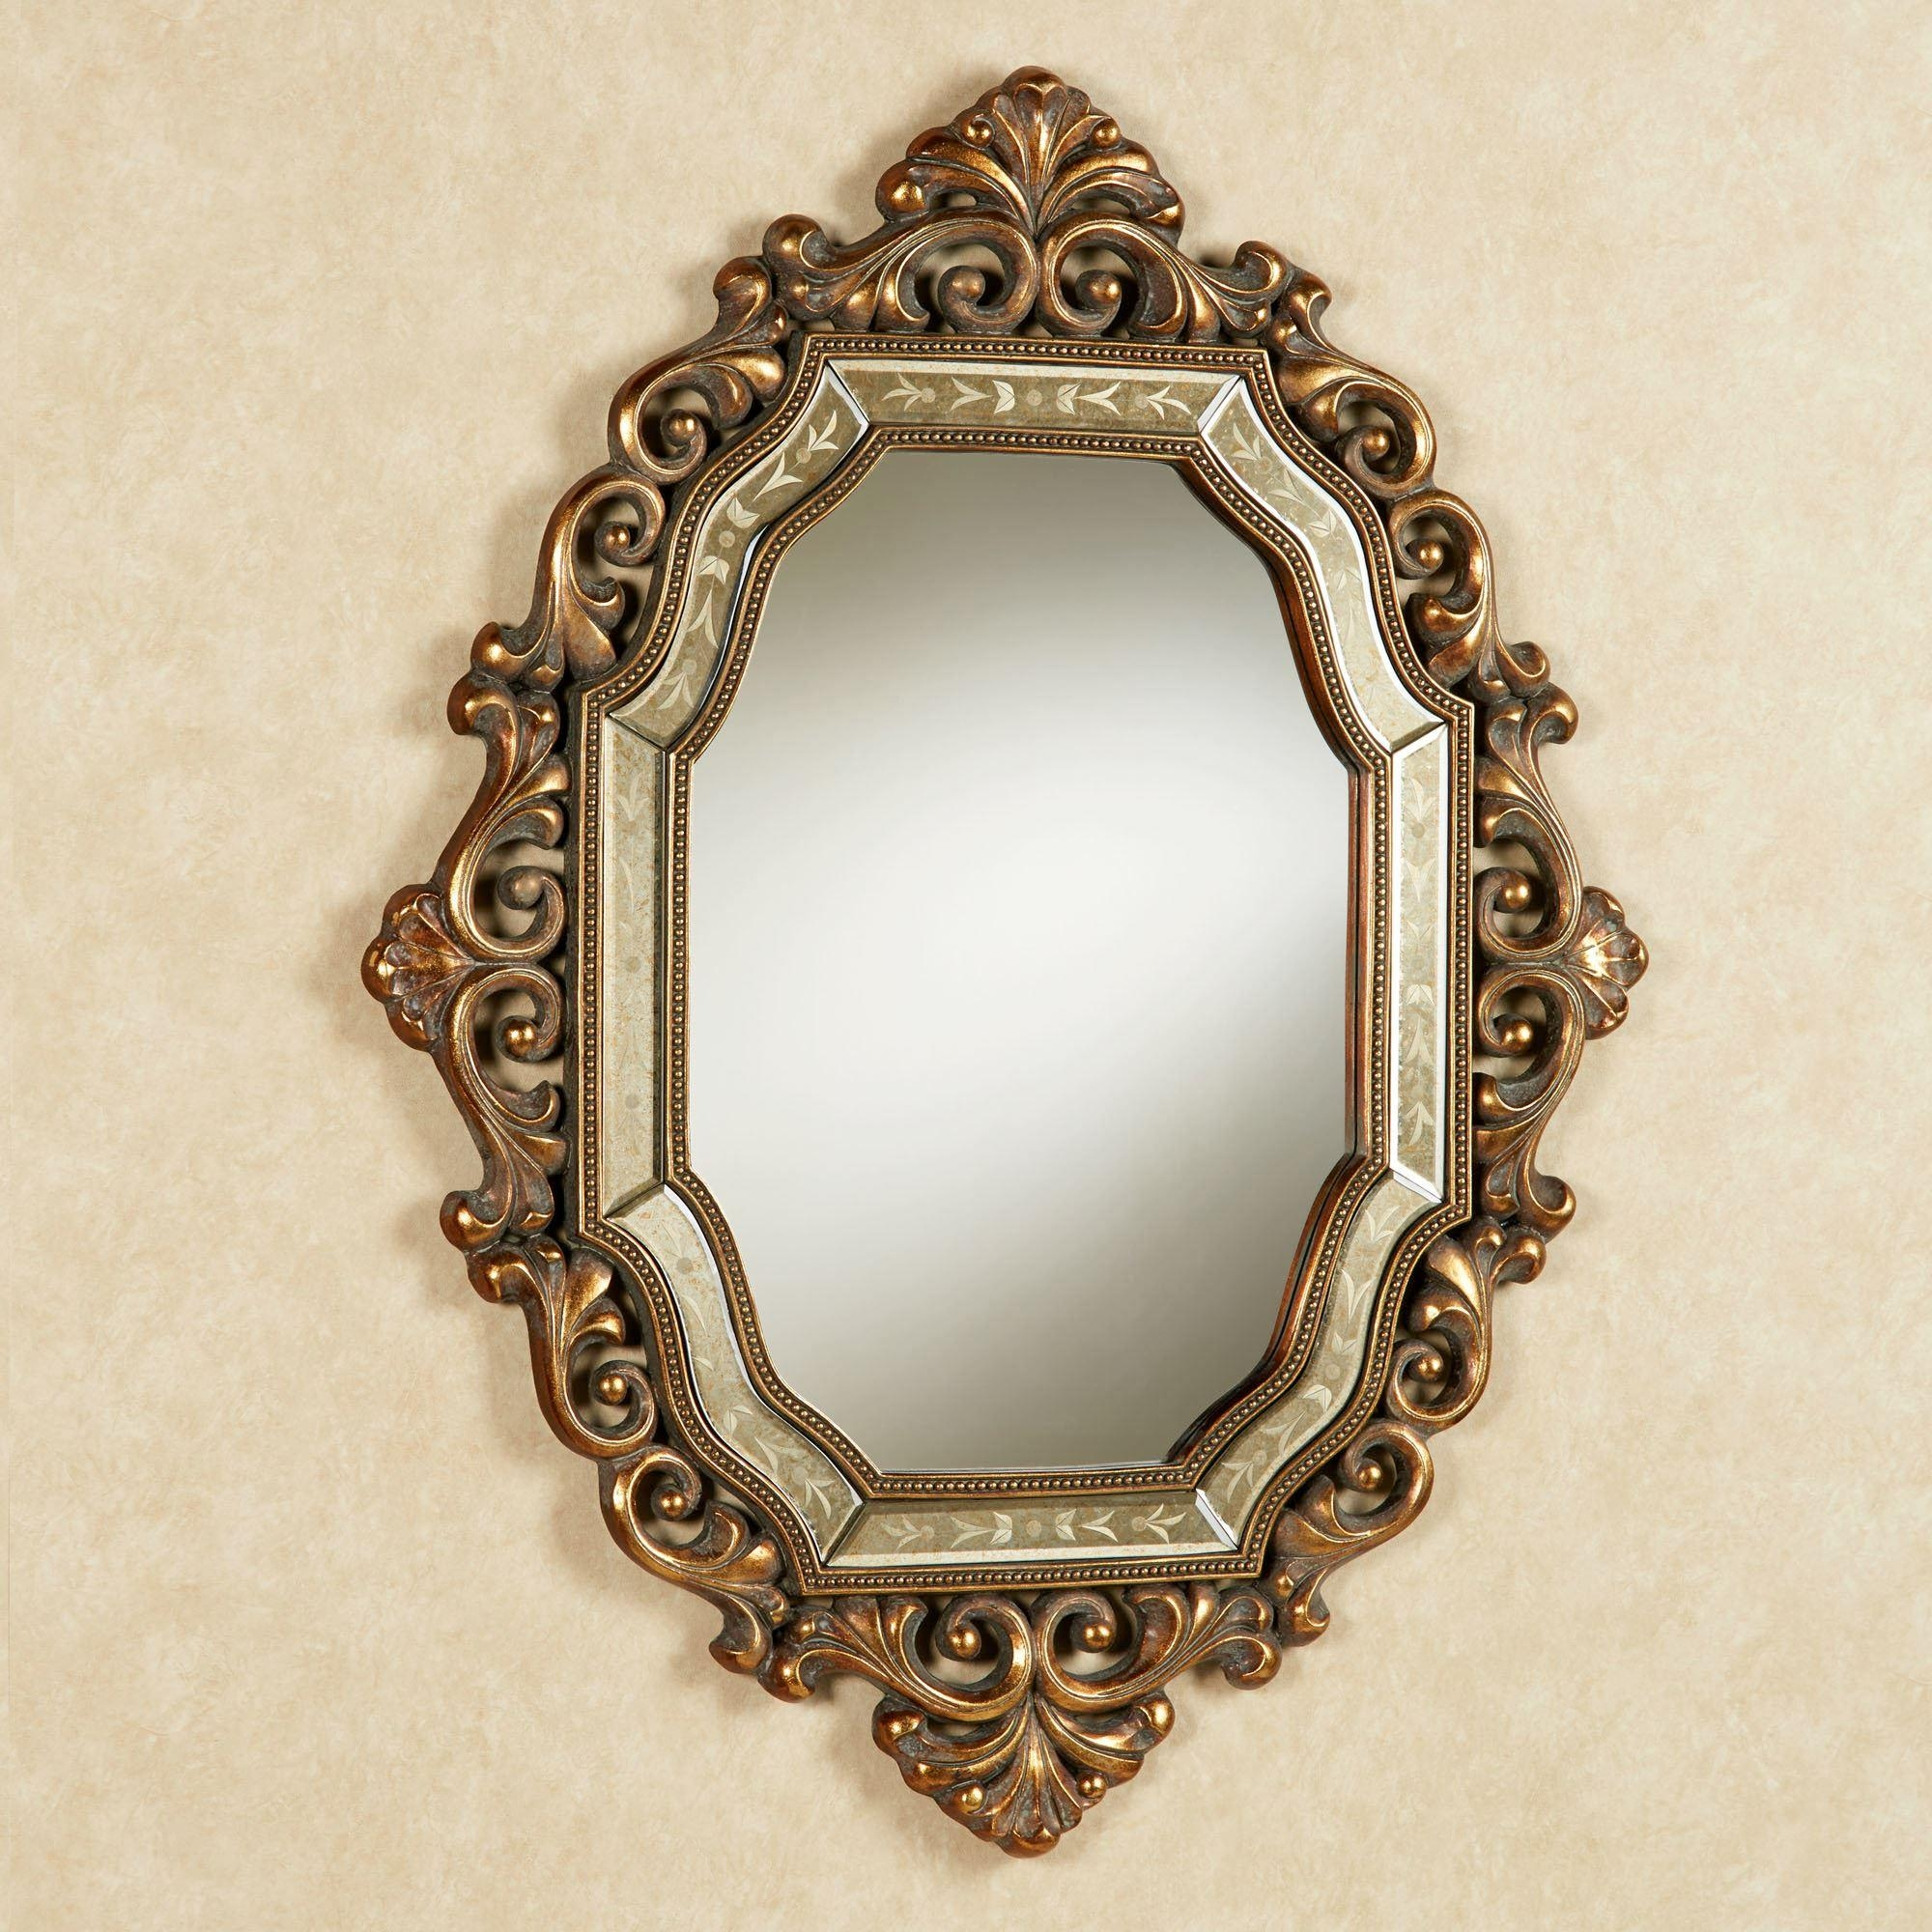 Verena Old World Wall Mirror For Antique Wall Mirror (View 3 of 20)